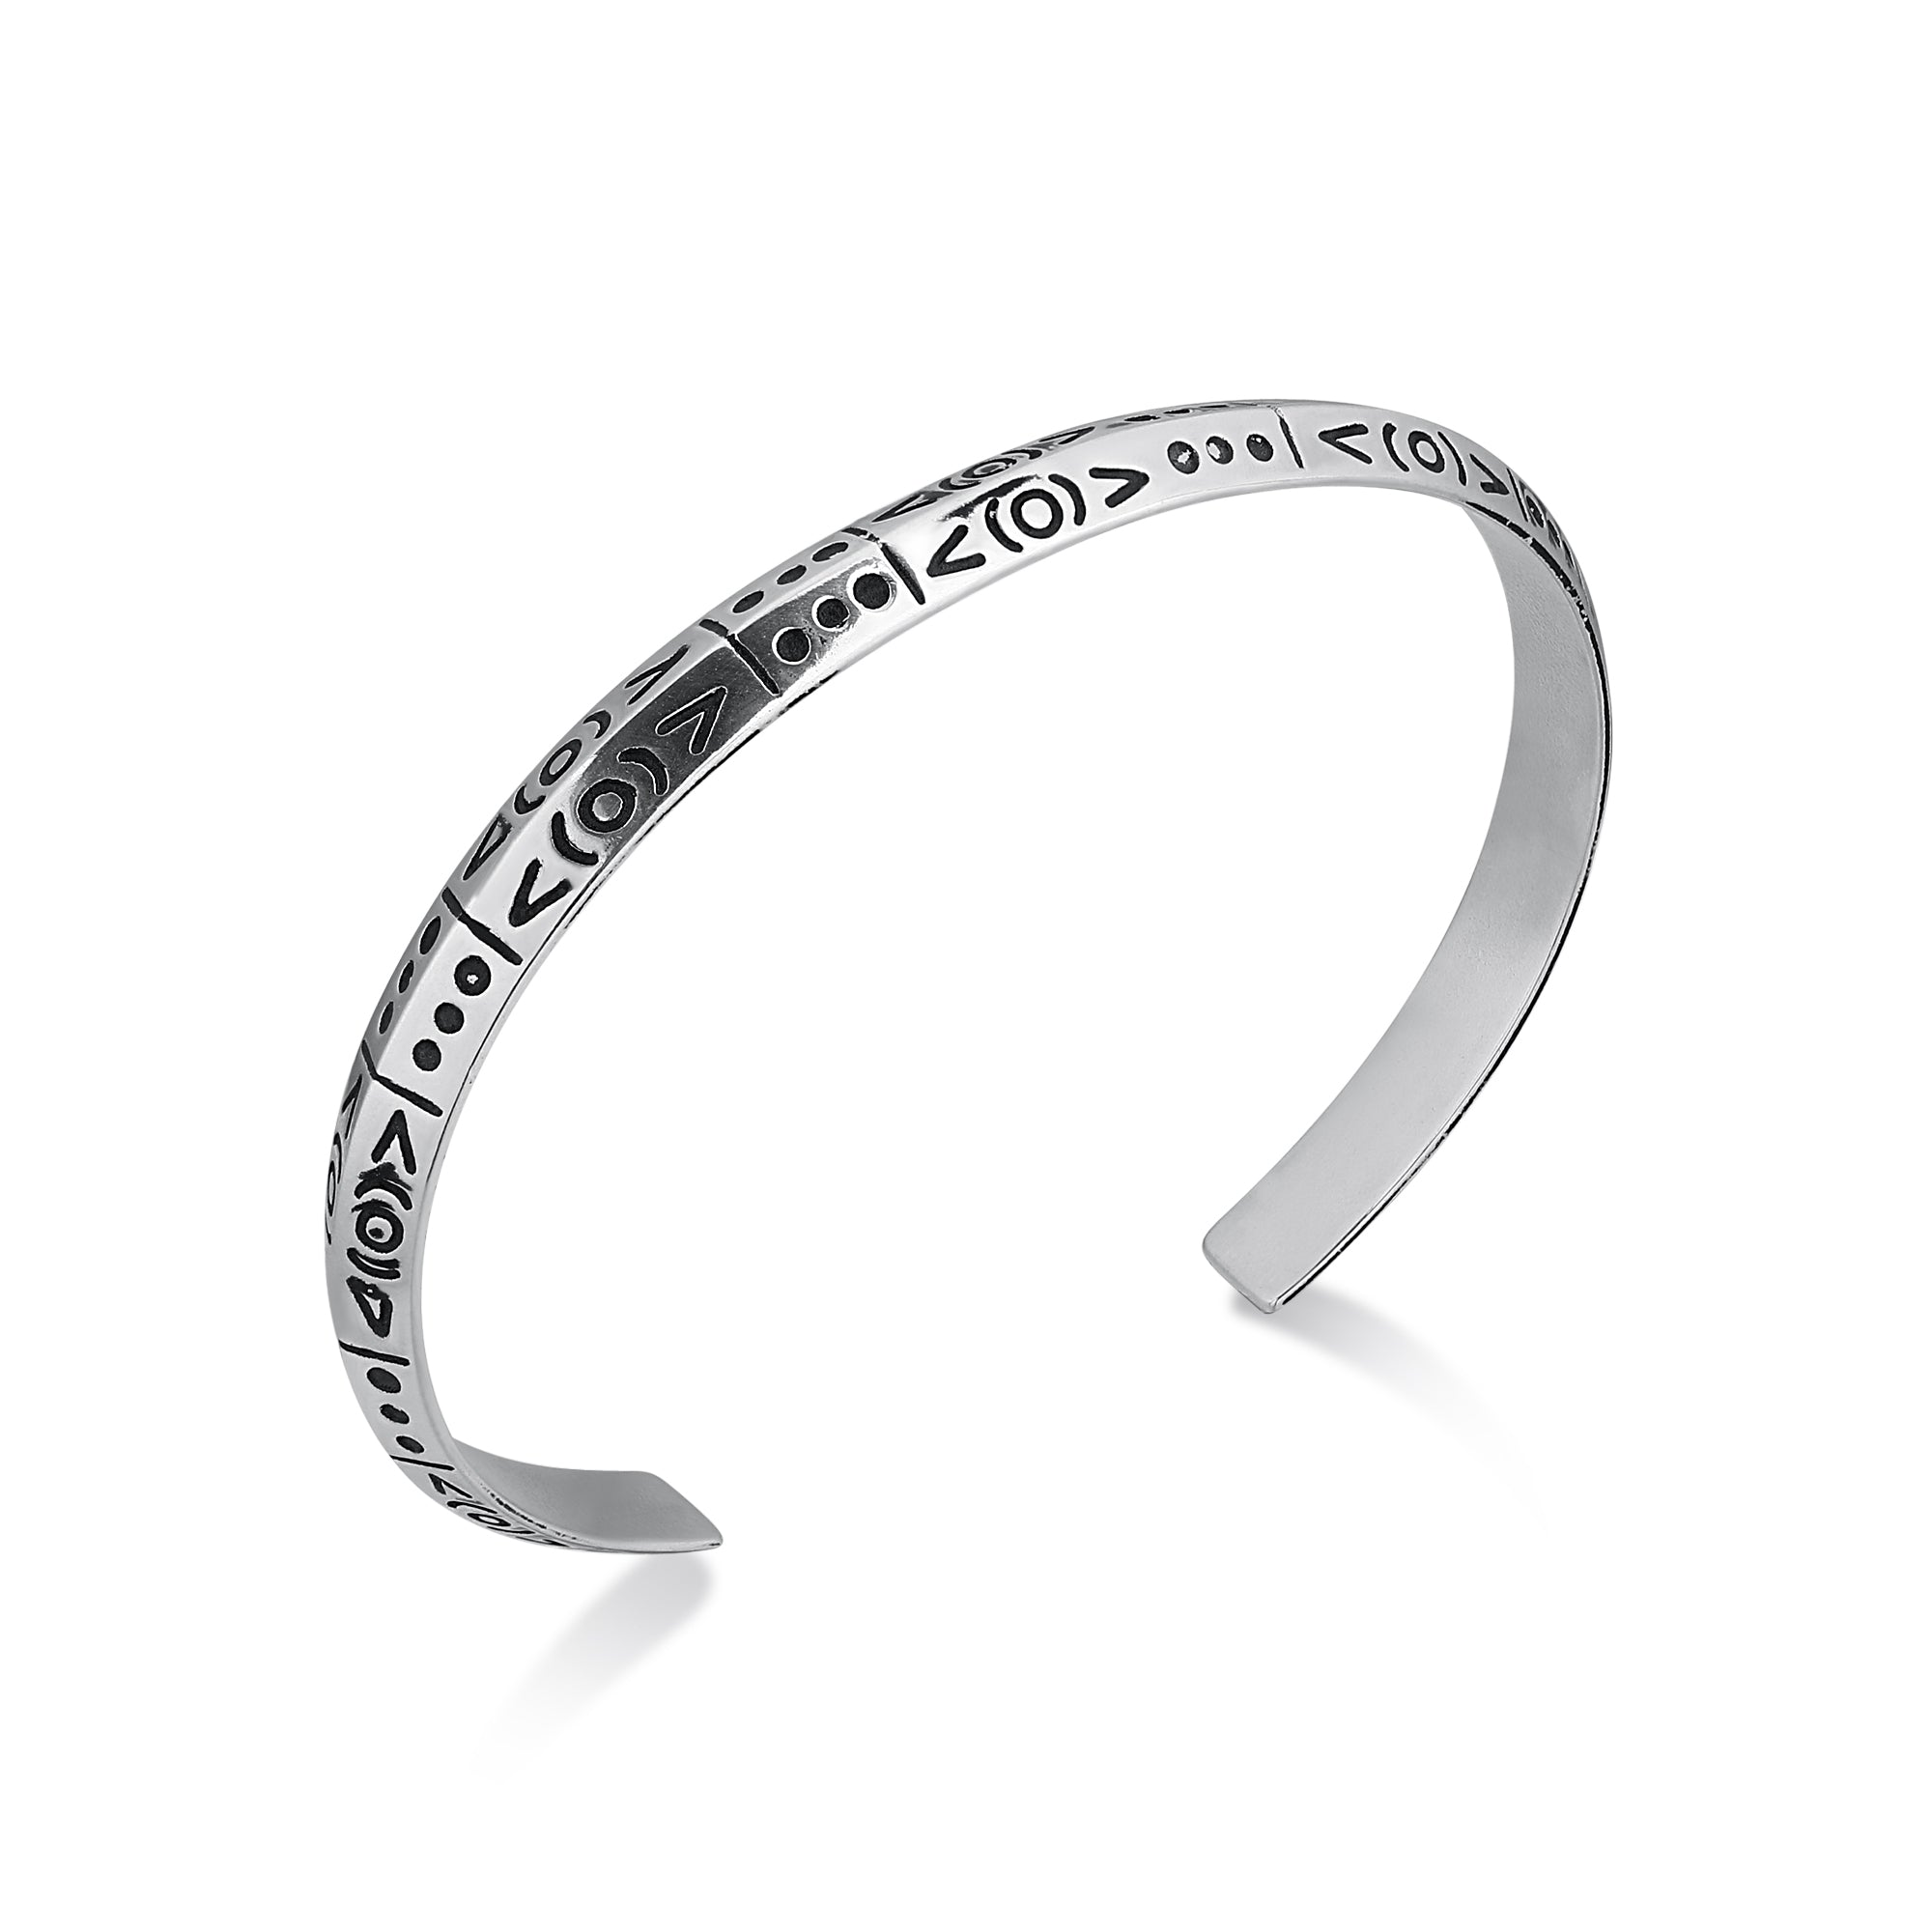 Cuff Narrow Cuff Bracelet with Symbols